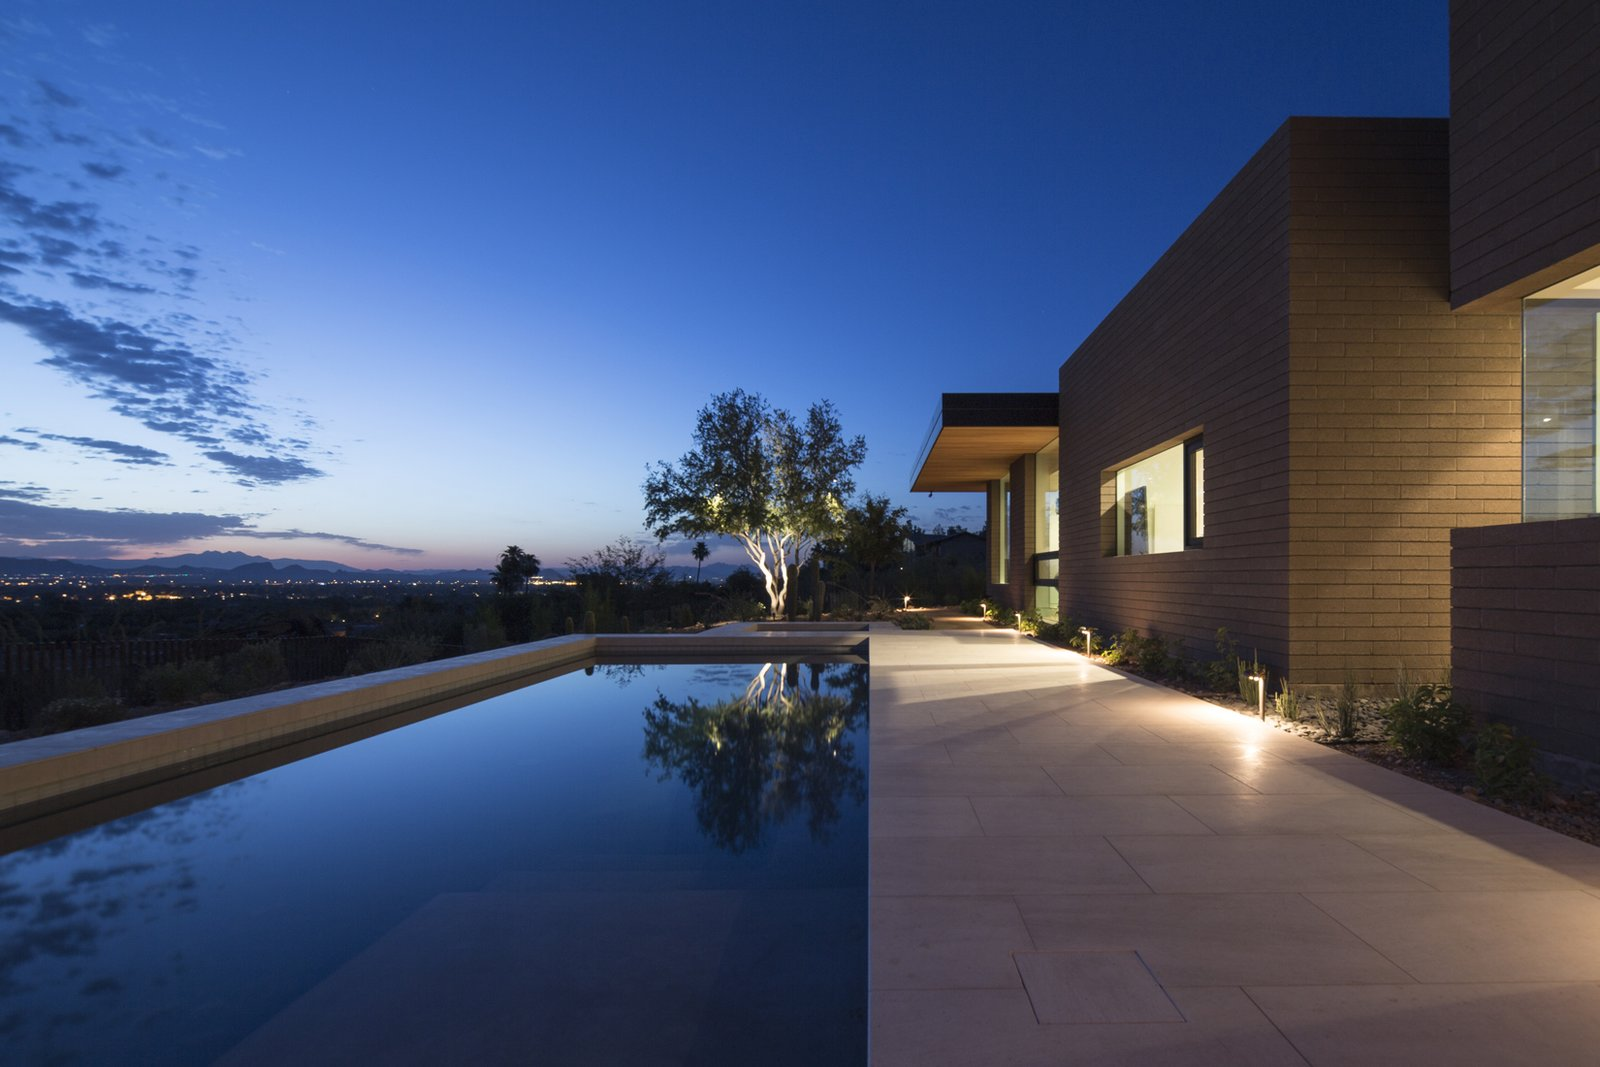 Outdoor, Back Yard, Shrubs, Trees, Hardscapes, Small Pools, Tubs, Shower, Concrete Pools, Tubs, Shower, Salt Water Pools, Tubs, Shower, Stone Patio, Porch, Deck, Large Patio, Porch, Deck, and Landscape Lighting  Rammed Earth Modern